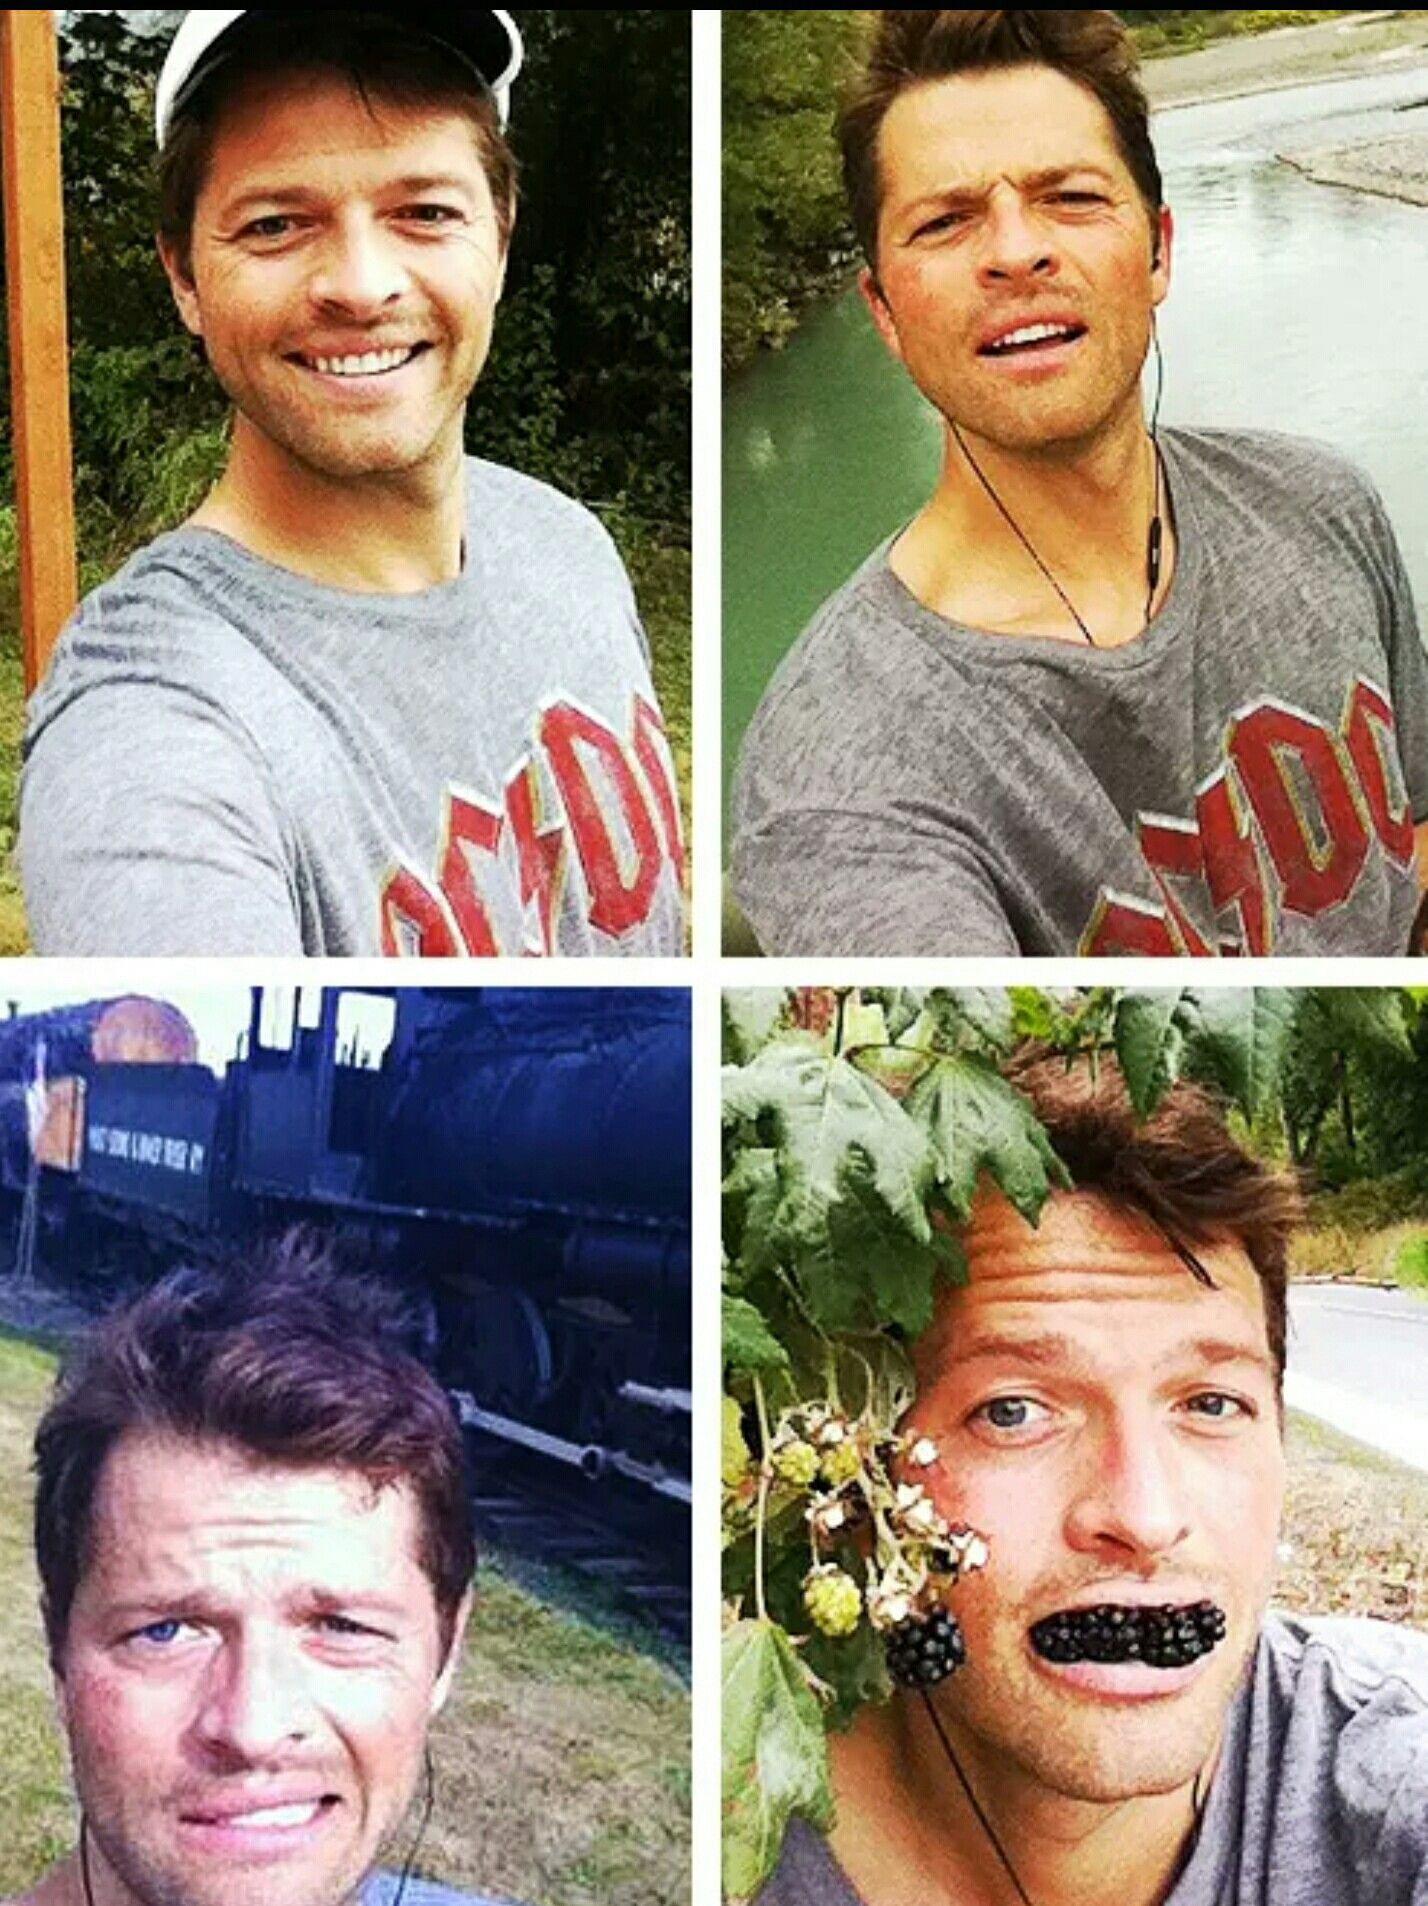 Misha Collins. I look up to this man...